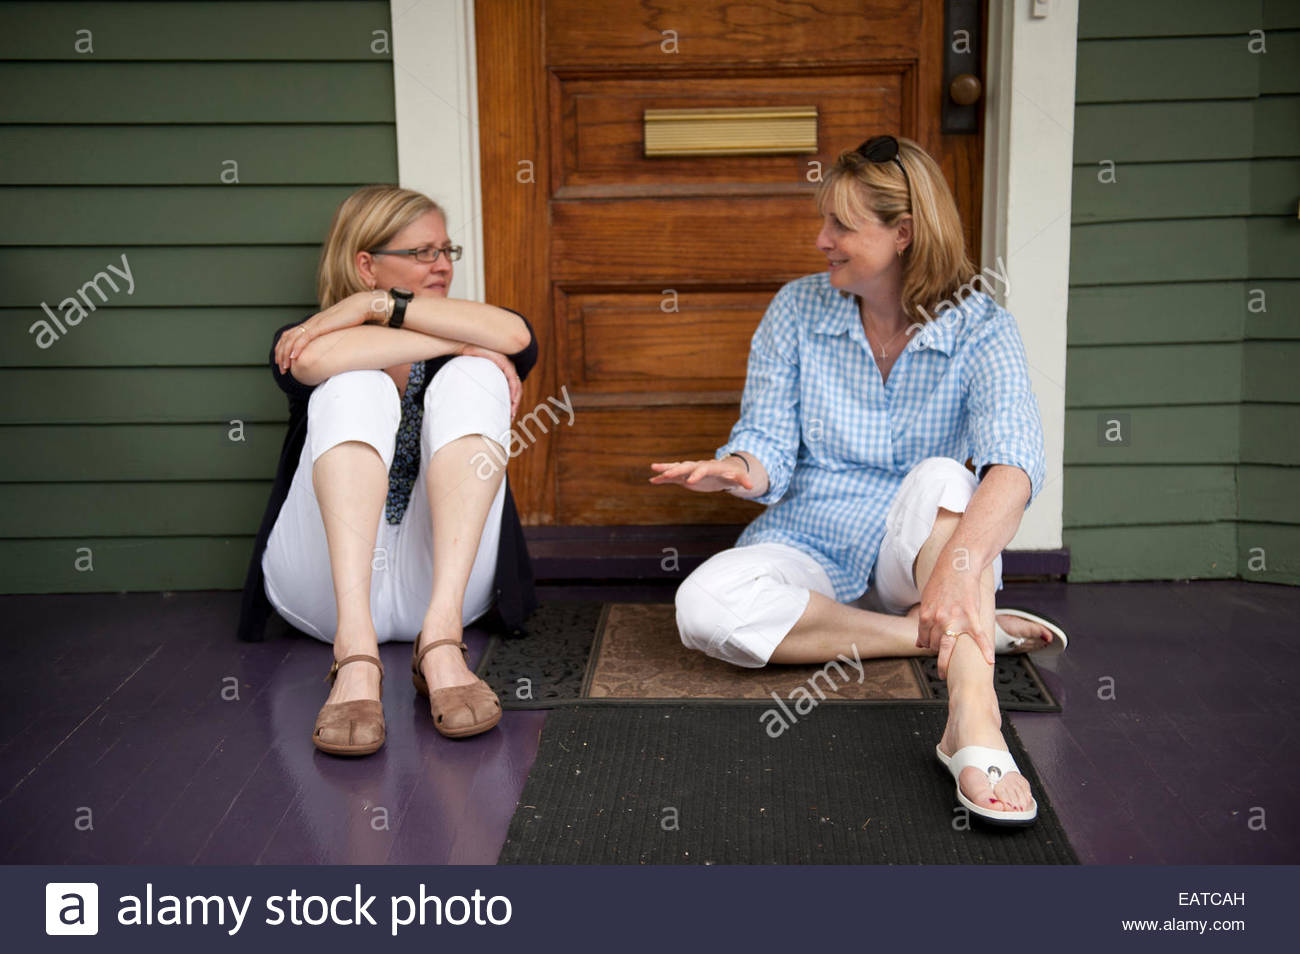 Two women spend time together. - Stock Image